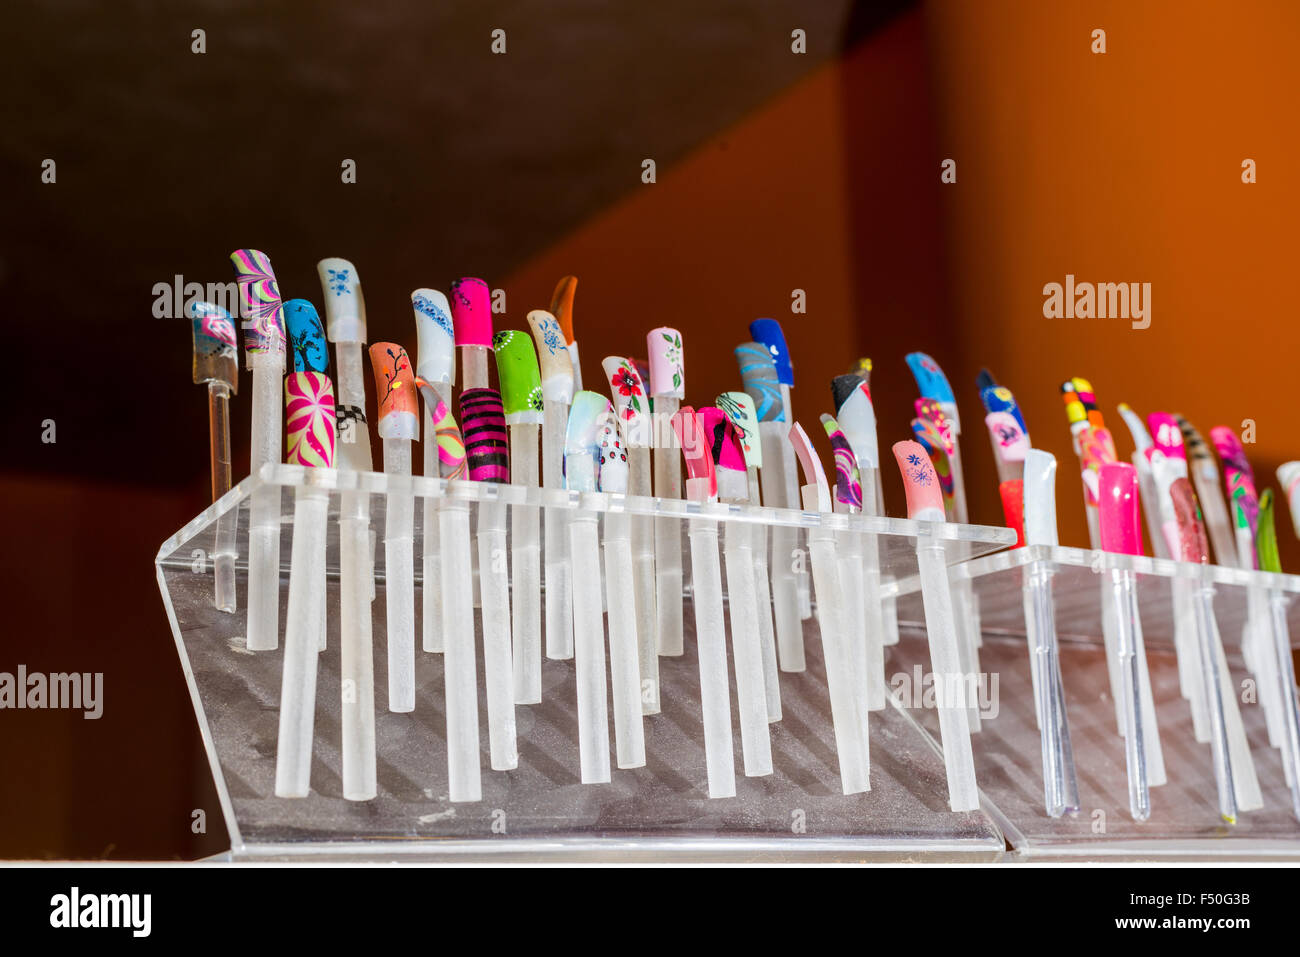 Nail extensions and nail disign are displayed for sale in one of the shops of the modern shopping mall Gulmohar - Stock Image